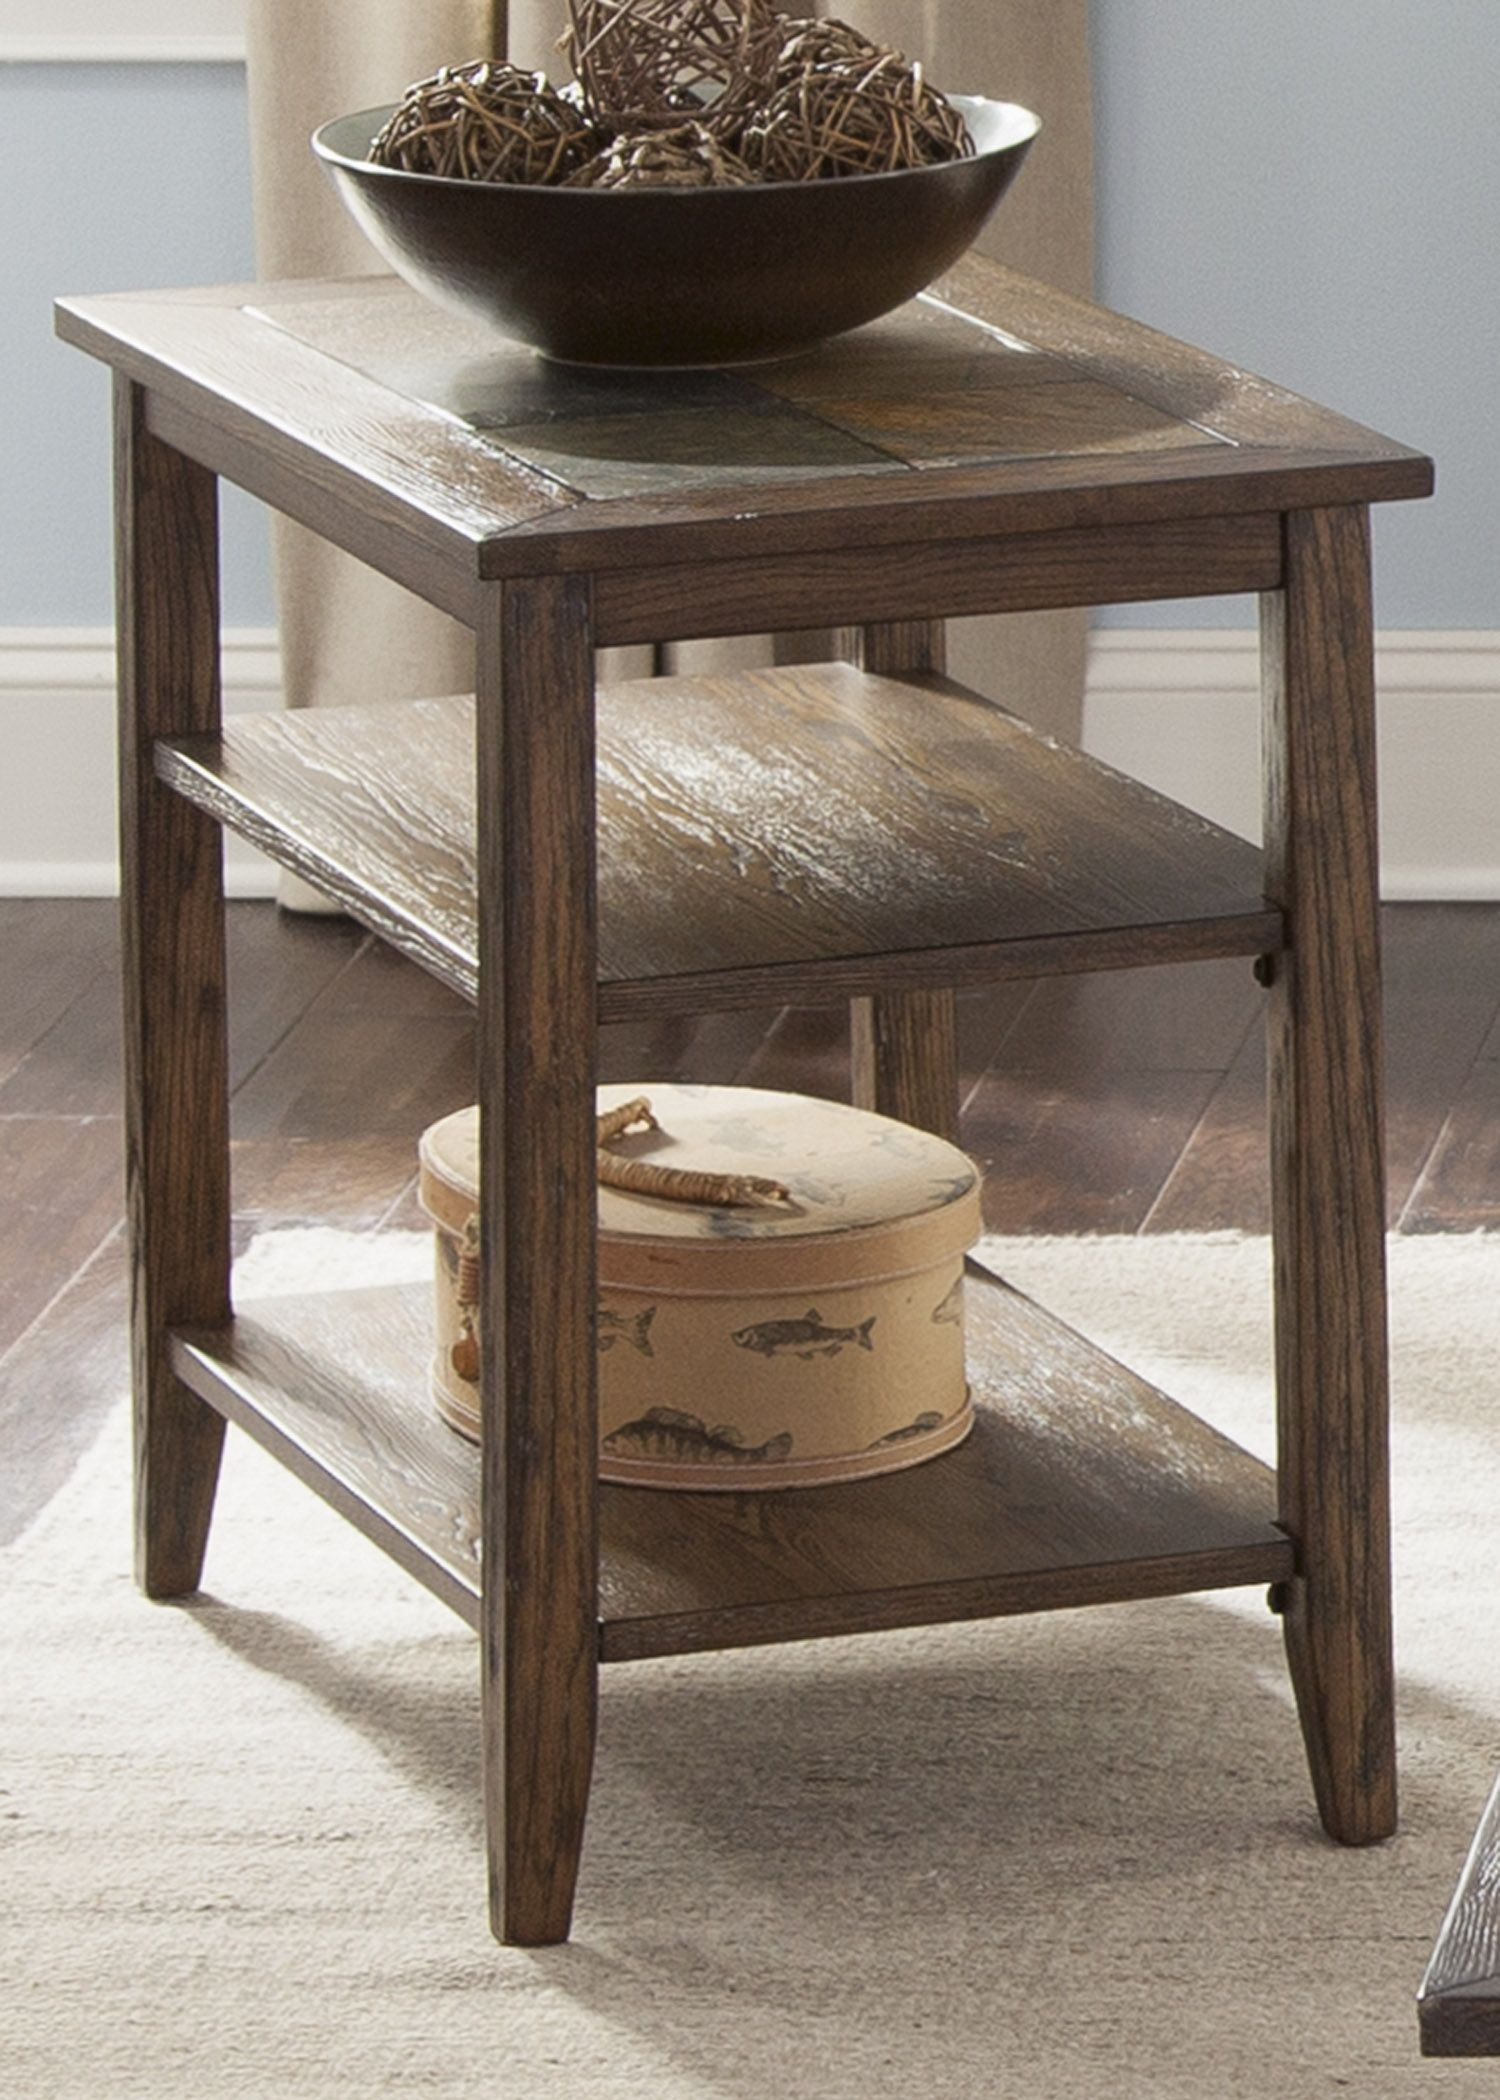 Brookstone Weathered Oak Chair Side Table From Liberty